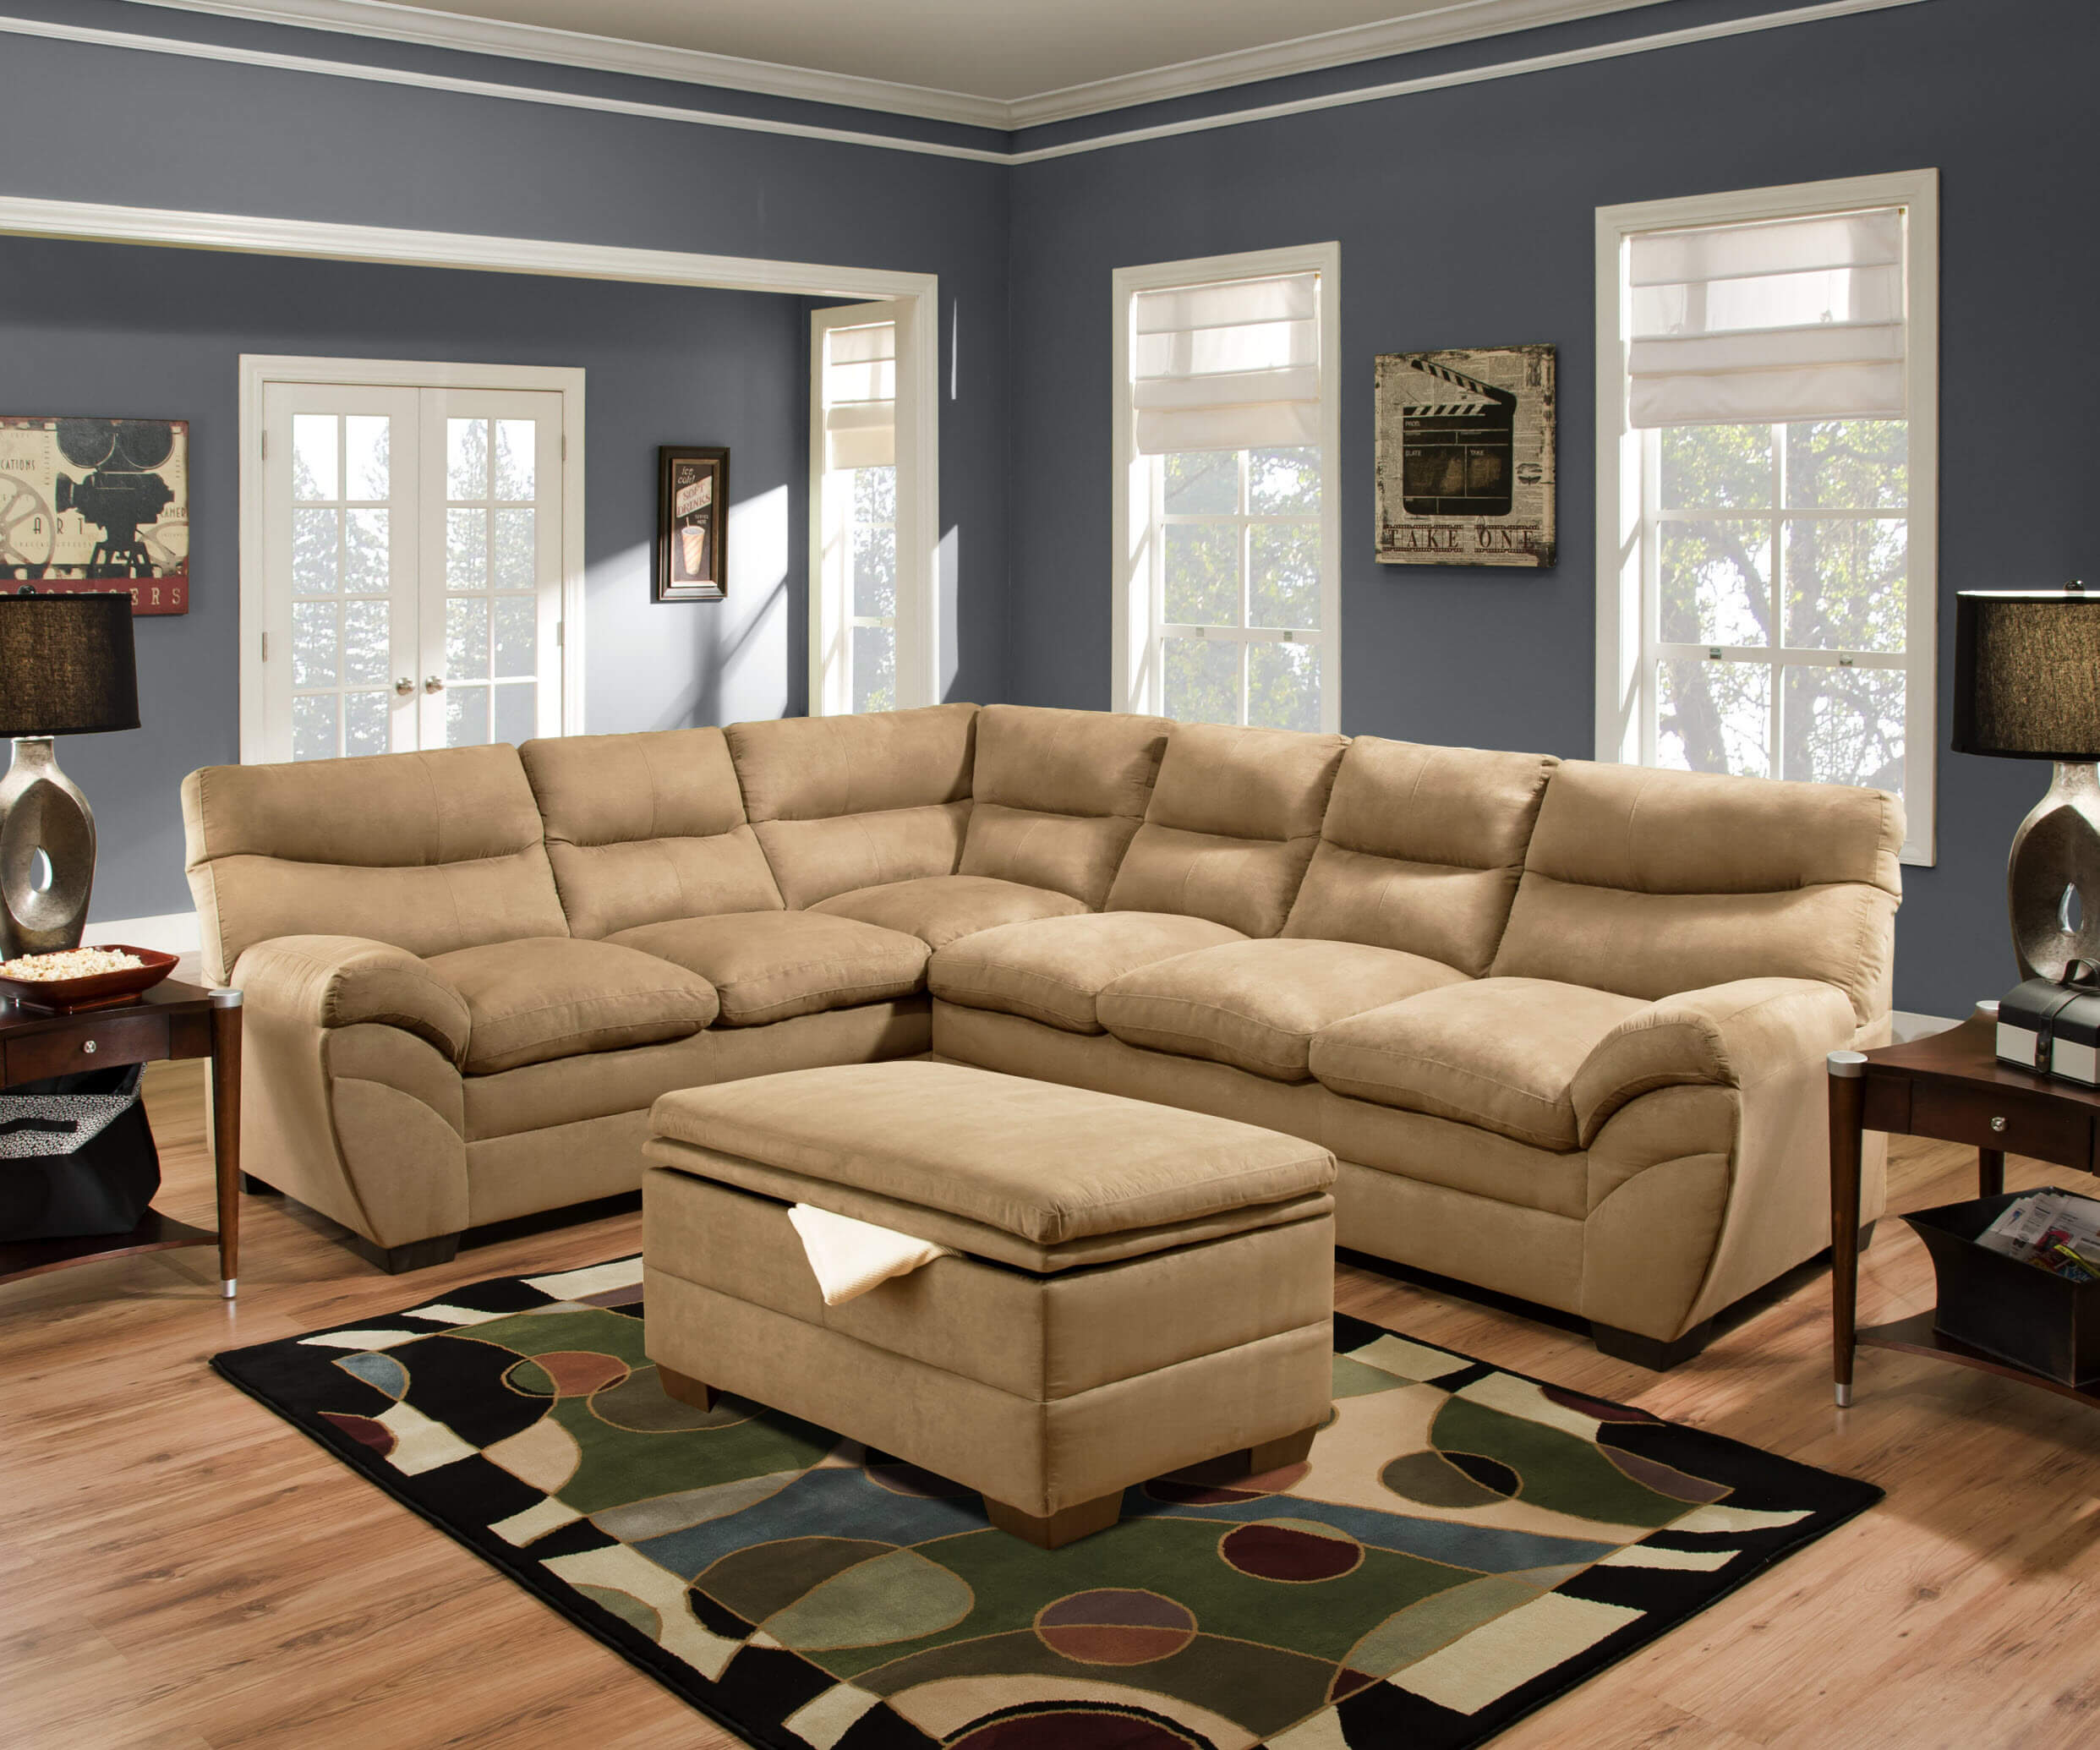 Simmon luna latte sectional sectional sofa sets - Simmons living room furniture sets ...